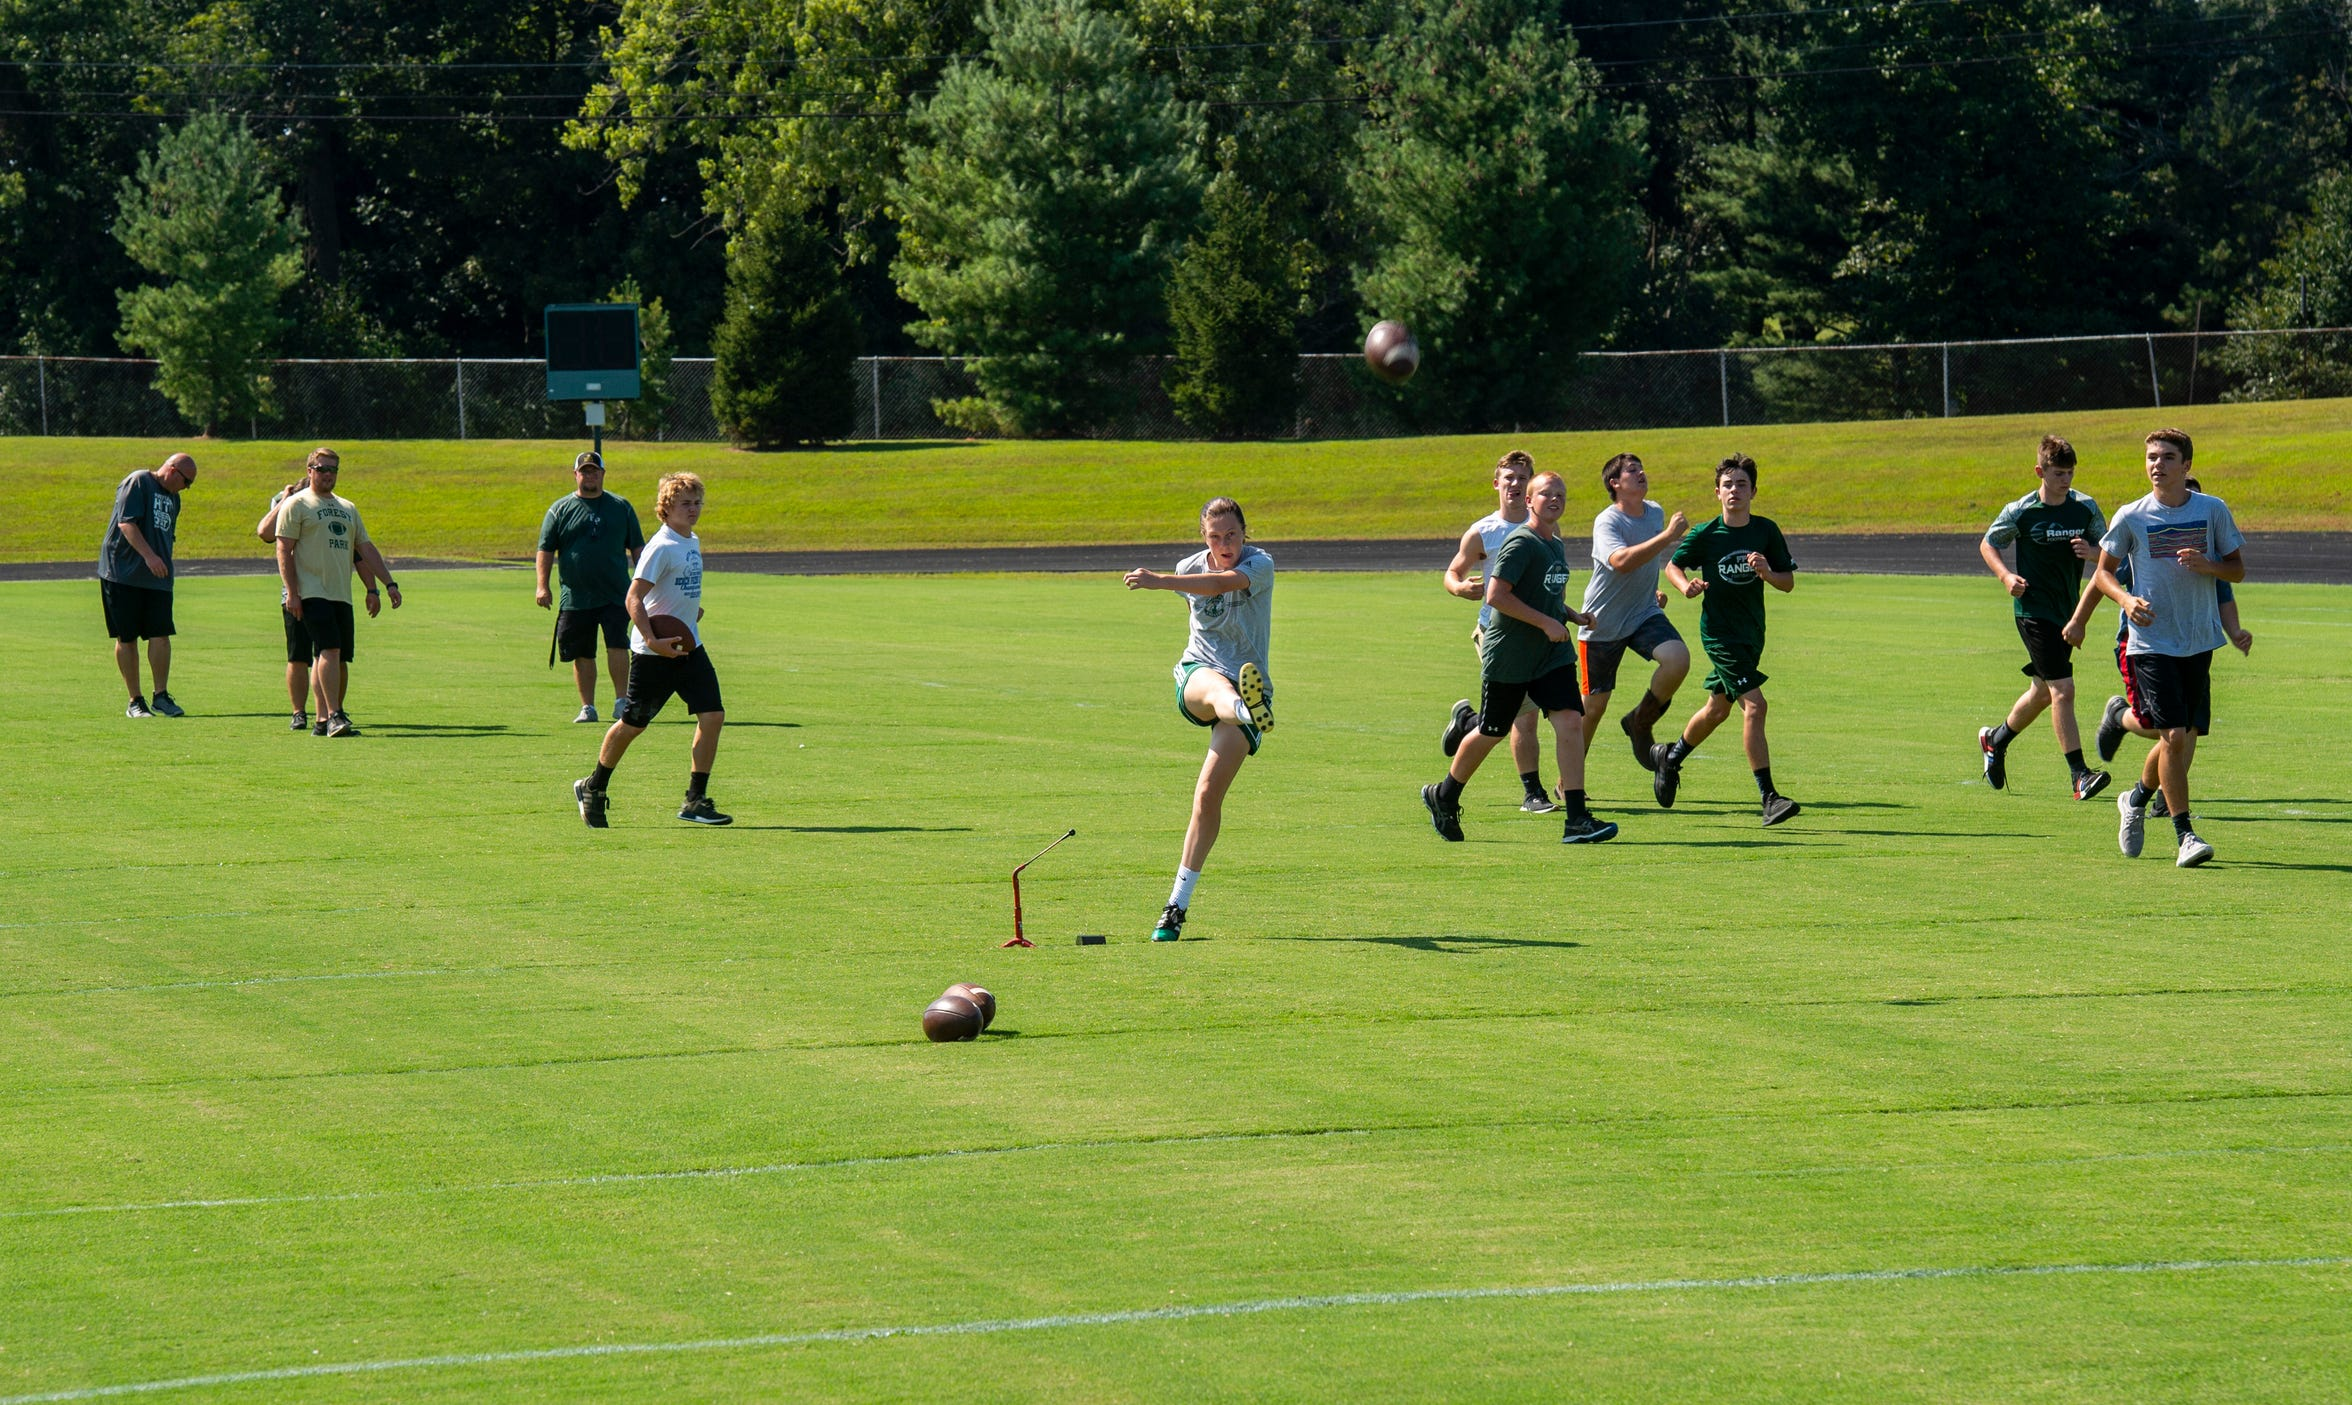 Abby Eckert kicks field goals as her Forest Park football teammates warm up at practice. After 30 minutes of football, Eckert heads to soccer practice.